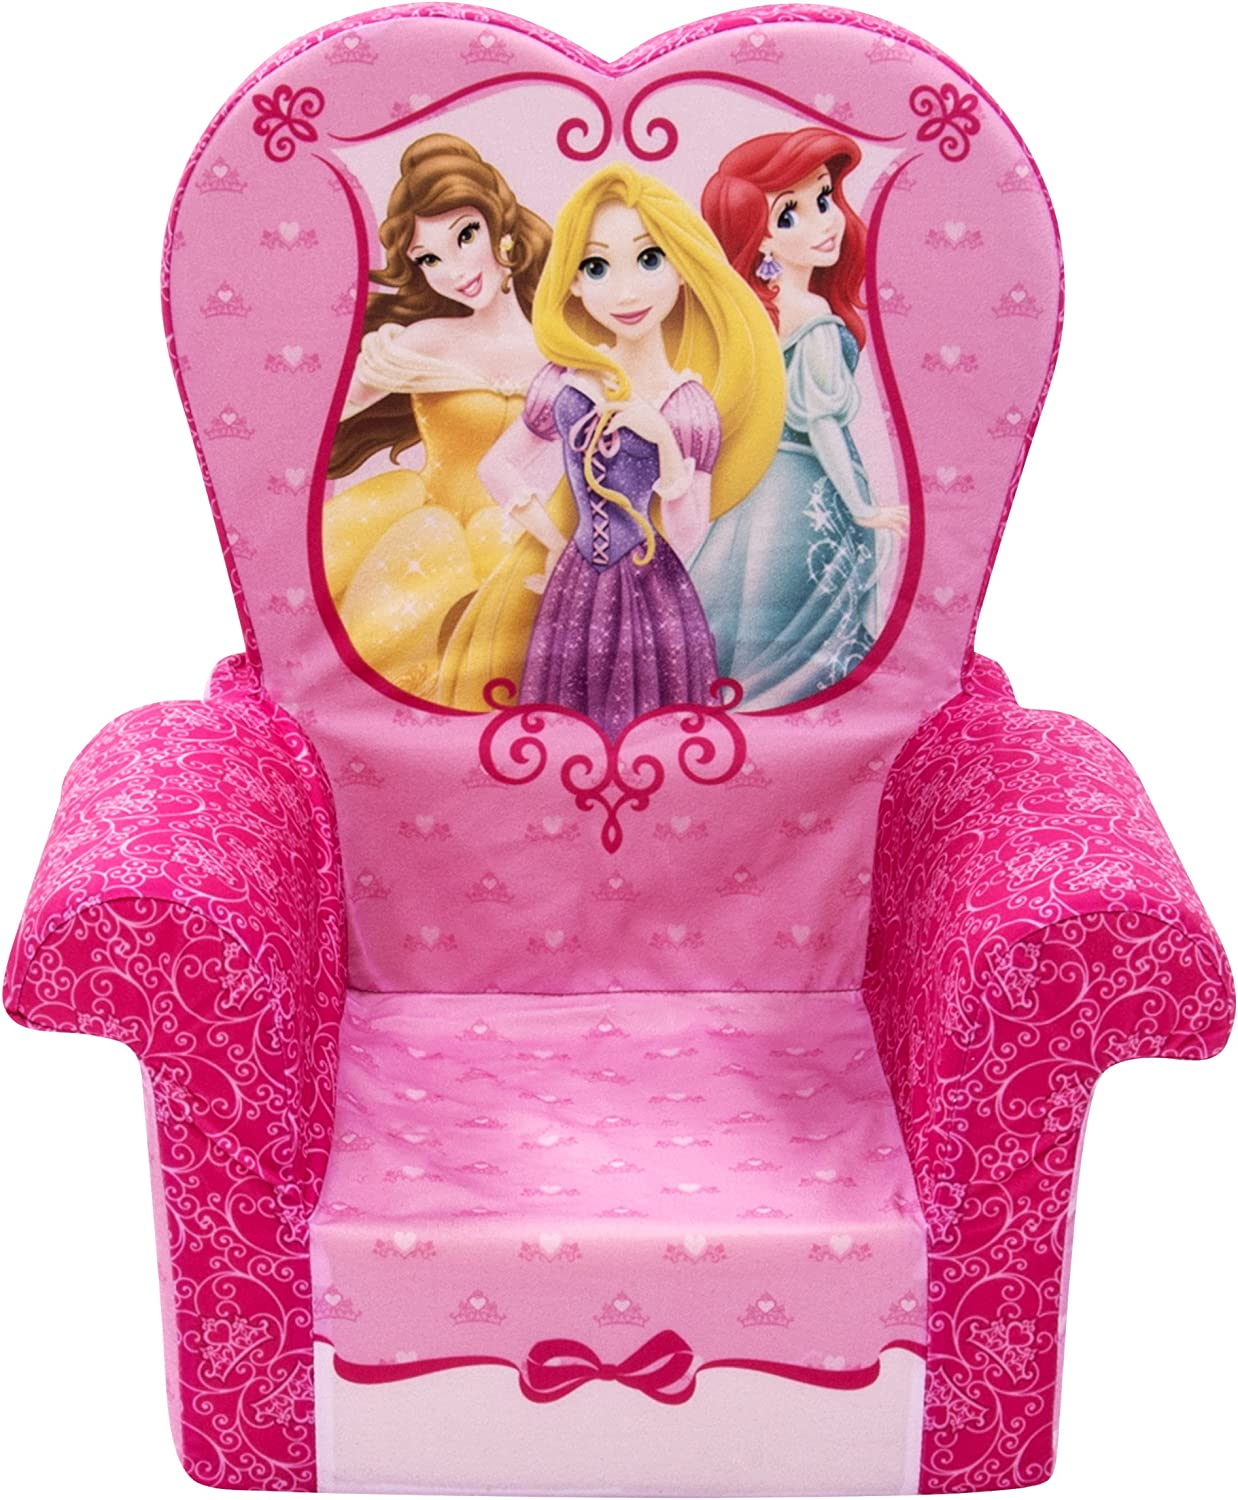 Marshmallow Furniture Comfy Foam Toddler Chair Kid's Furniture for Ages 2 Years Old and Up, Disney Princess Themed, Pink